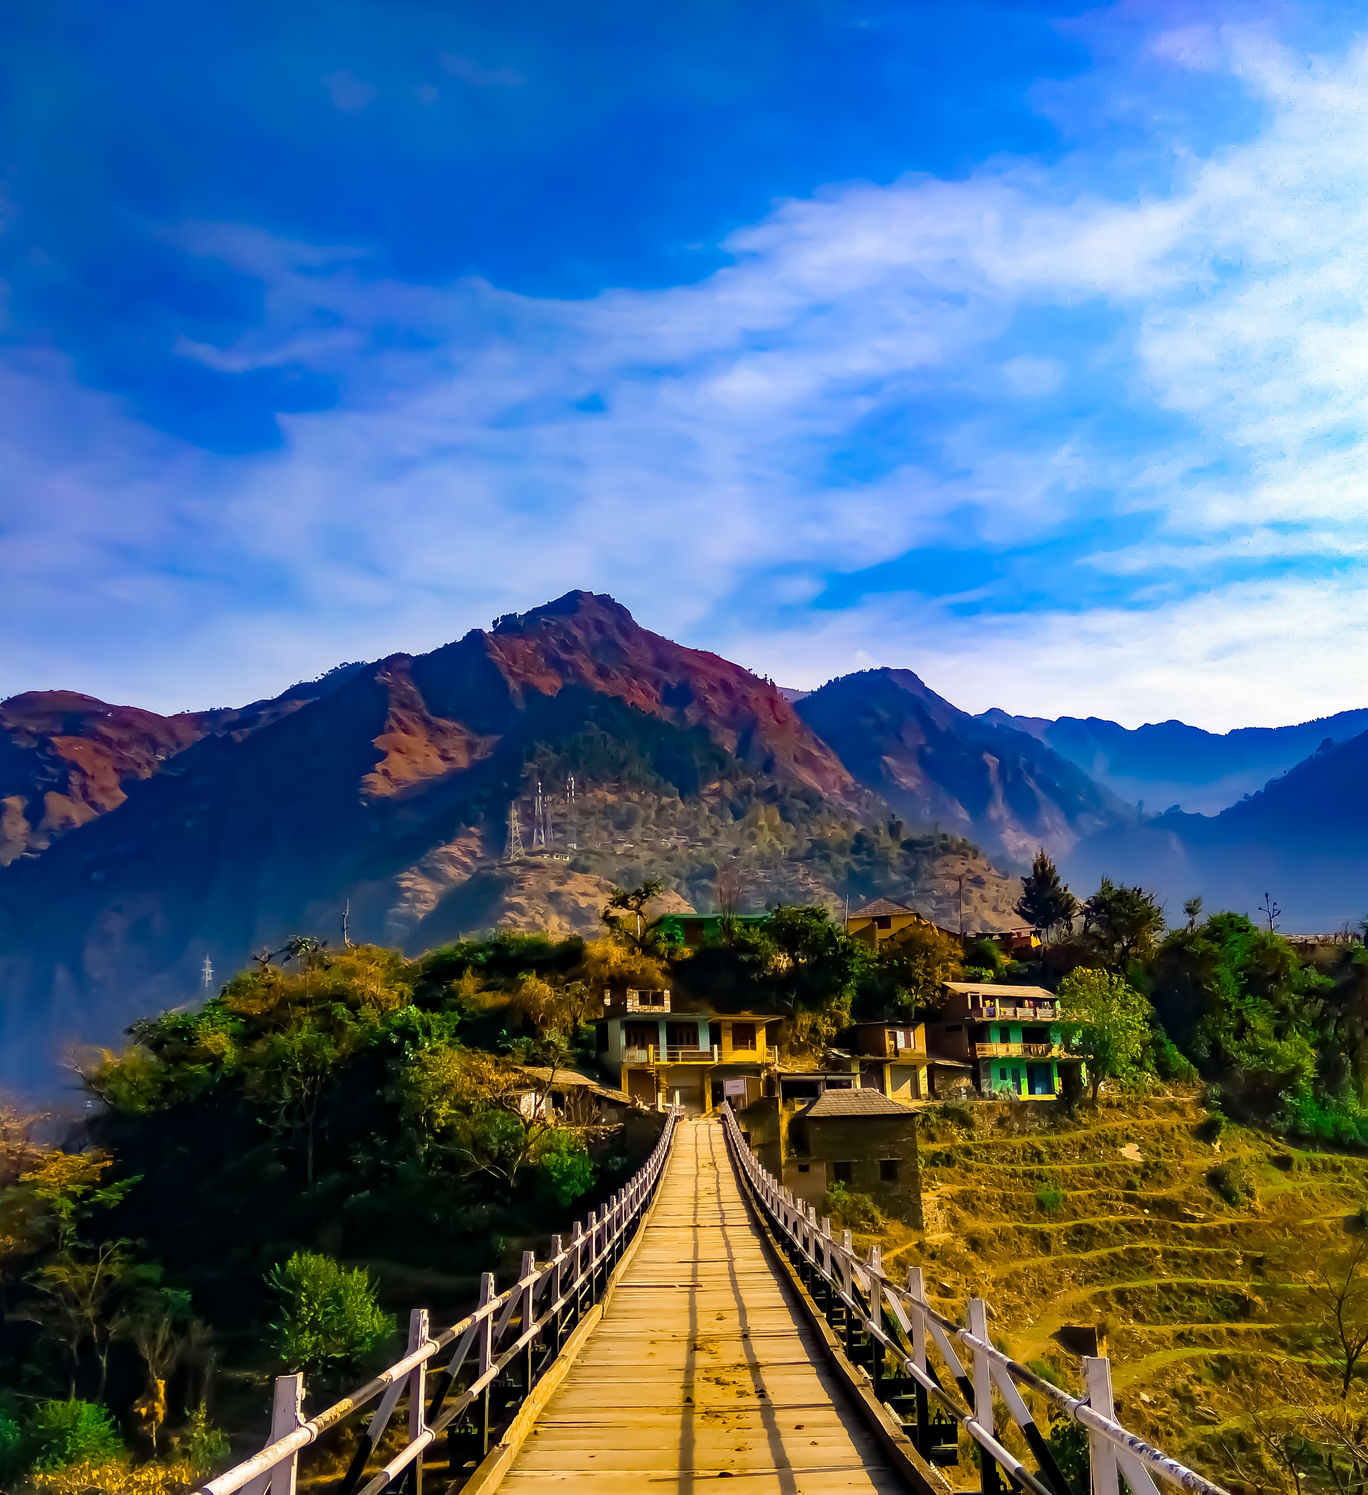 Photo of Hanogi Footbridge By Rahul Gehlot